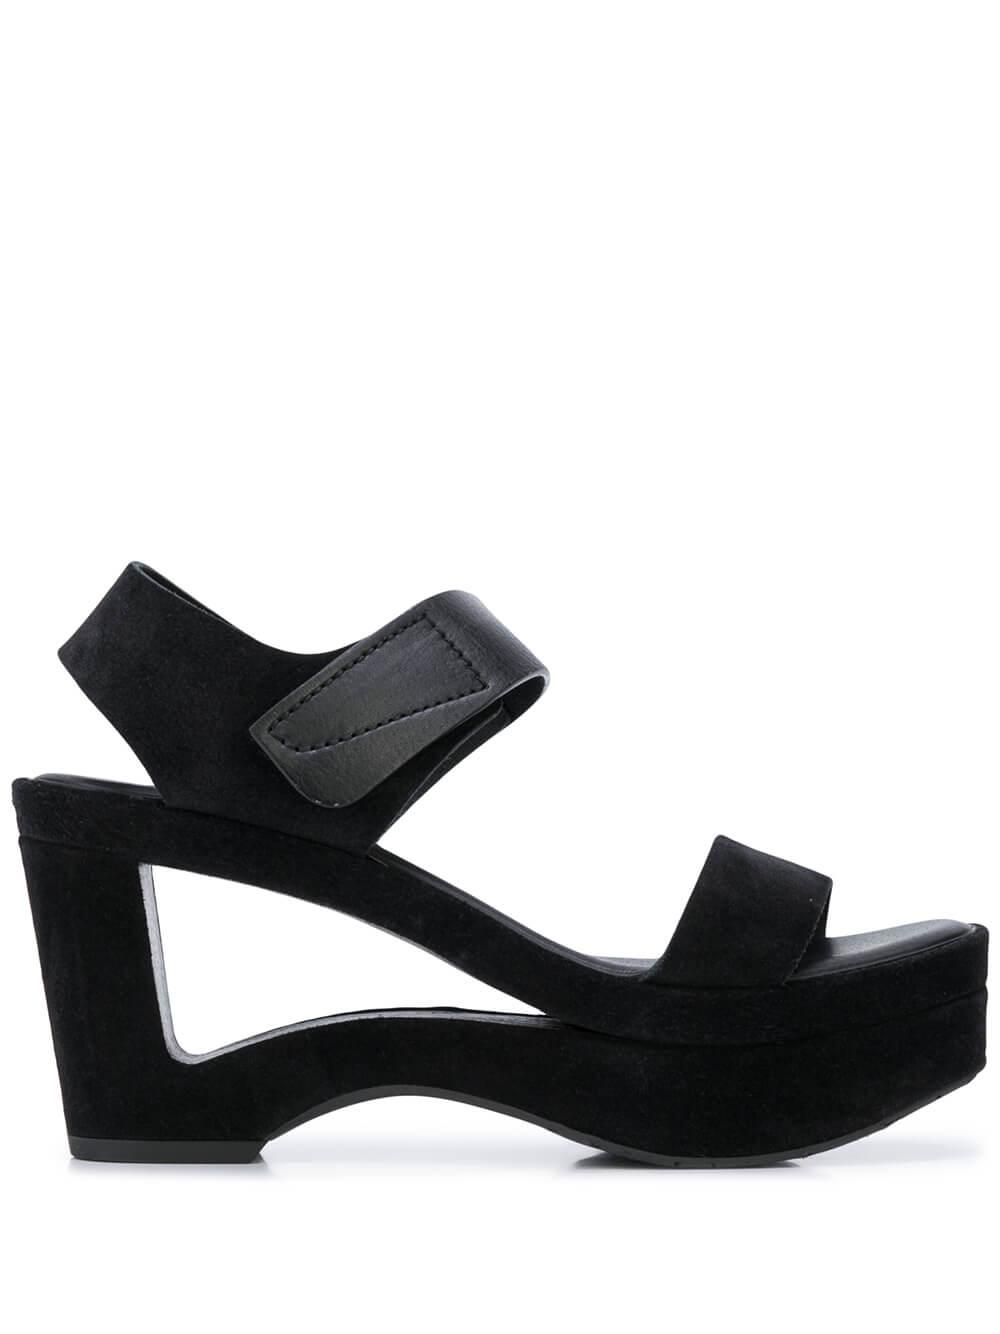 Platform Sandal With Cutout Wedge